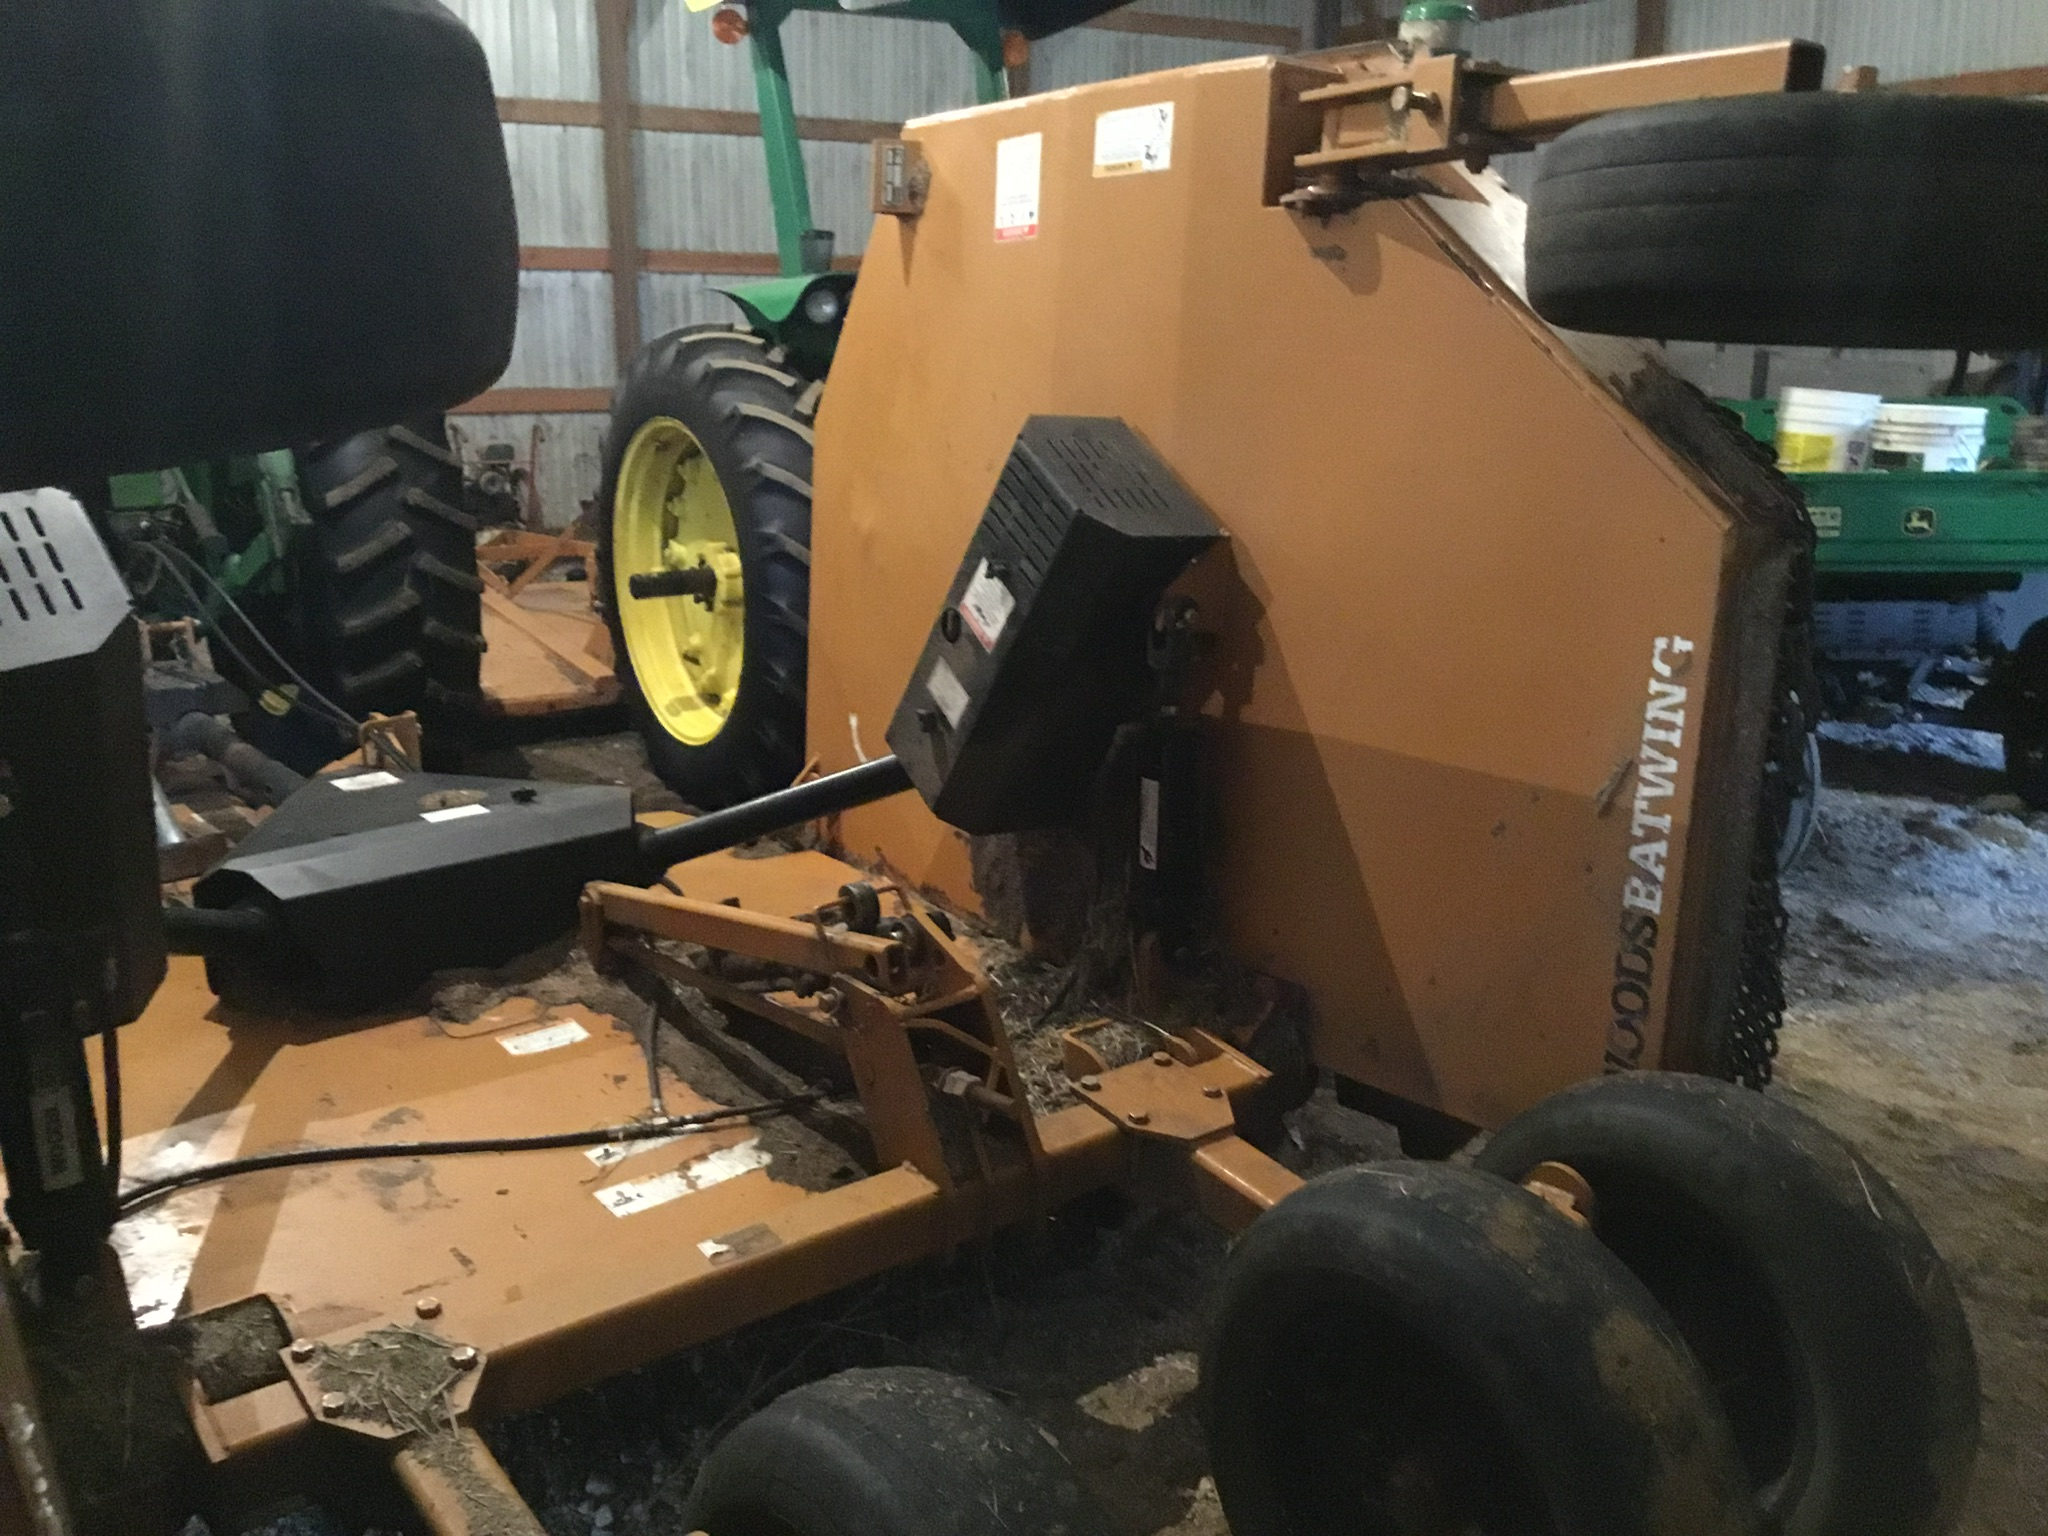 Woods 9309 Bat Wing Mower, 15Ft., 1,000 PTO, Chains, 6 Aircraft Tires, Serial #745029 - Image 7 of 9